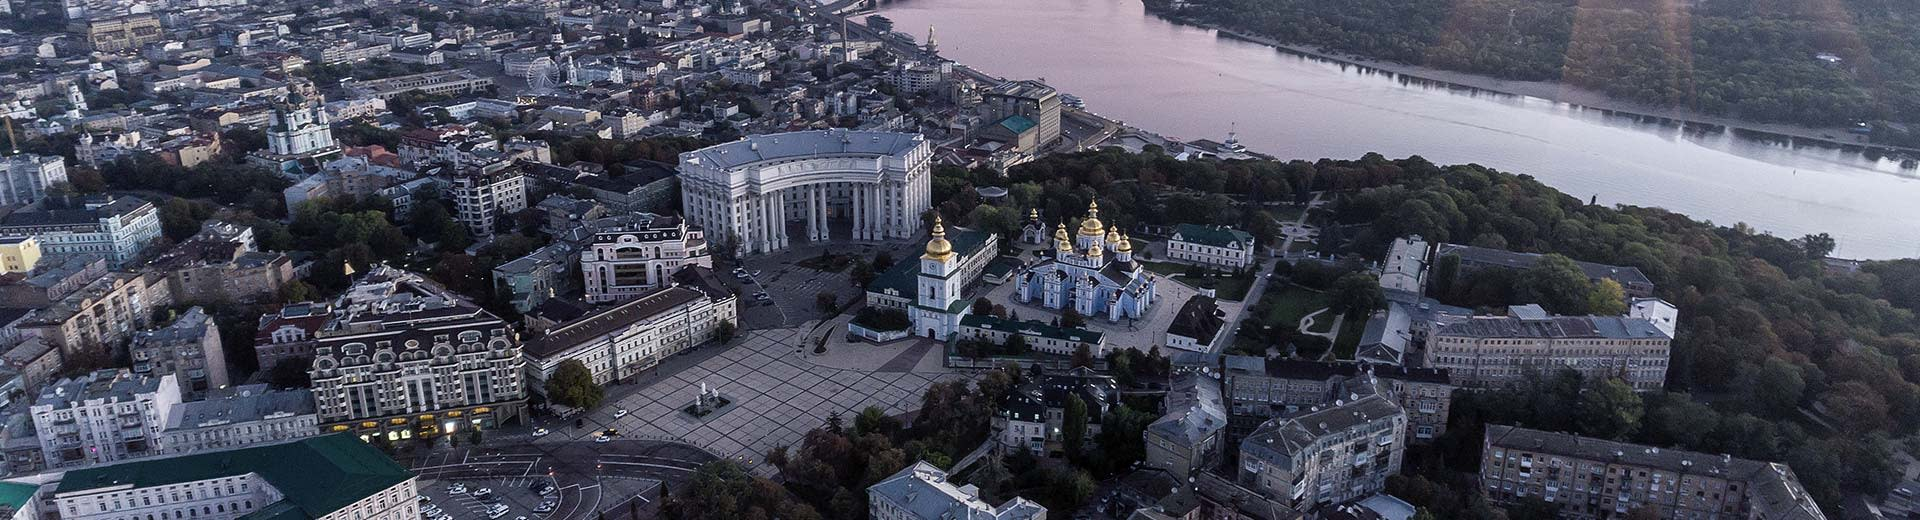 The central area of Kiev on a cloudy day